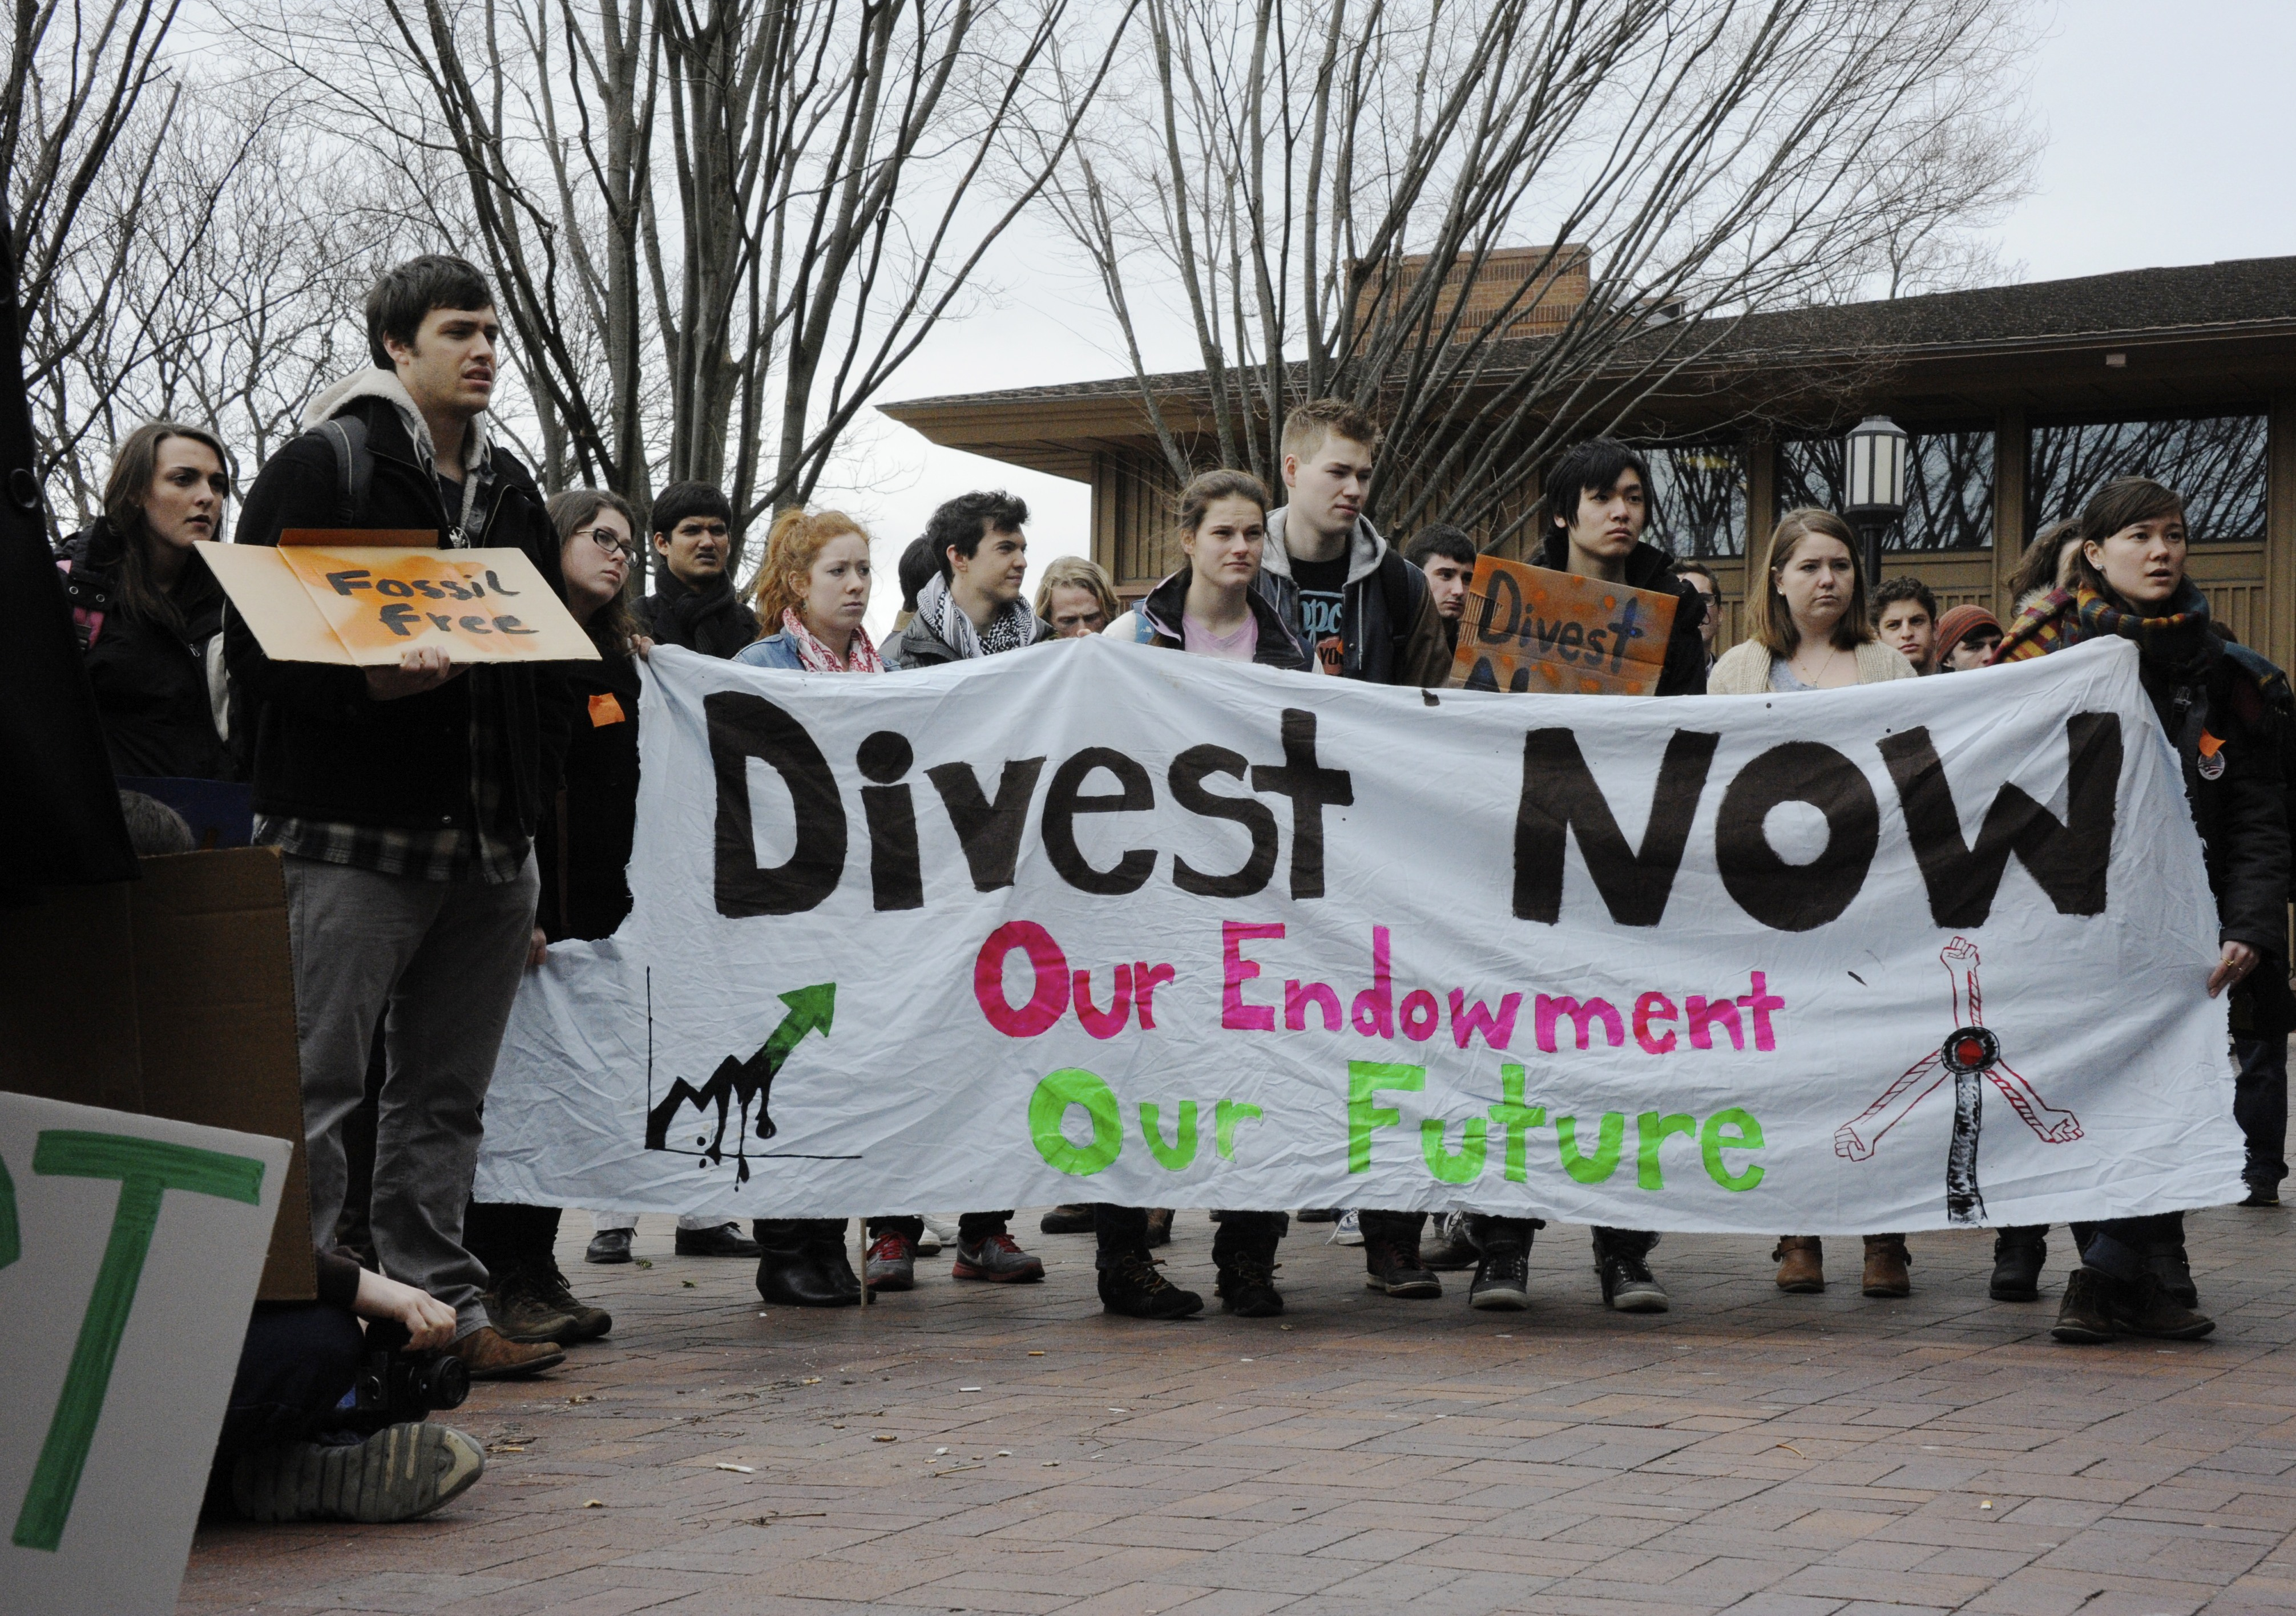 Does divestment work?